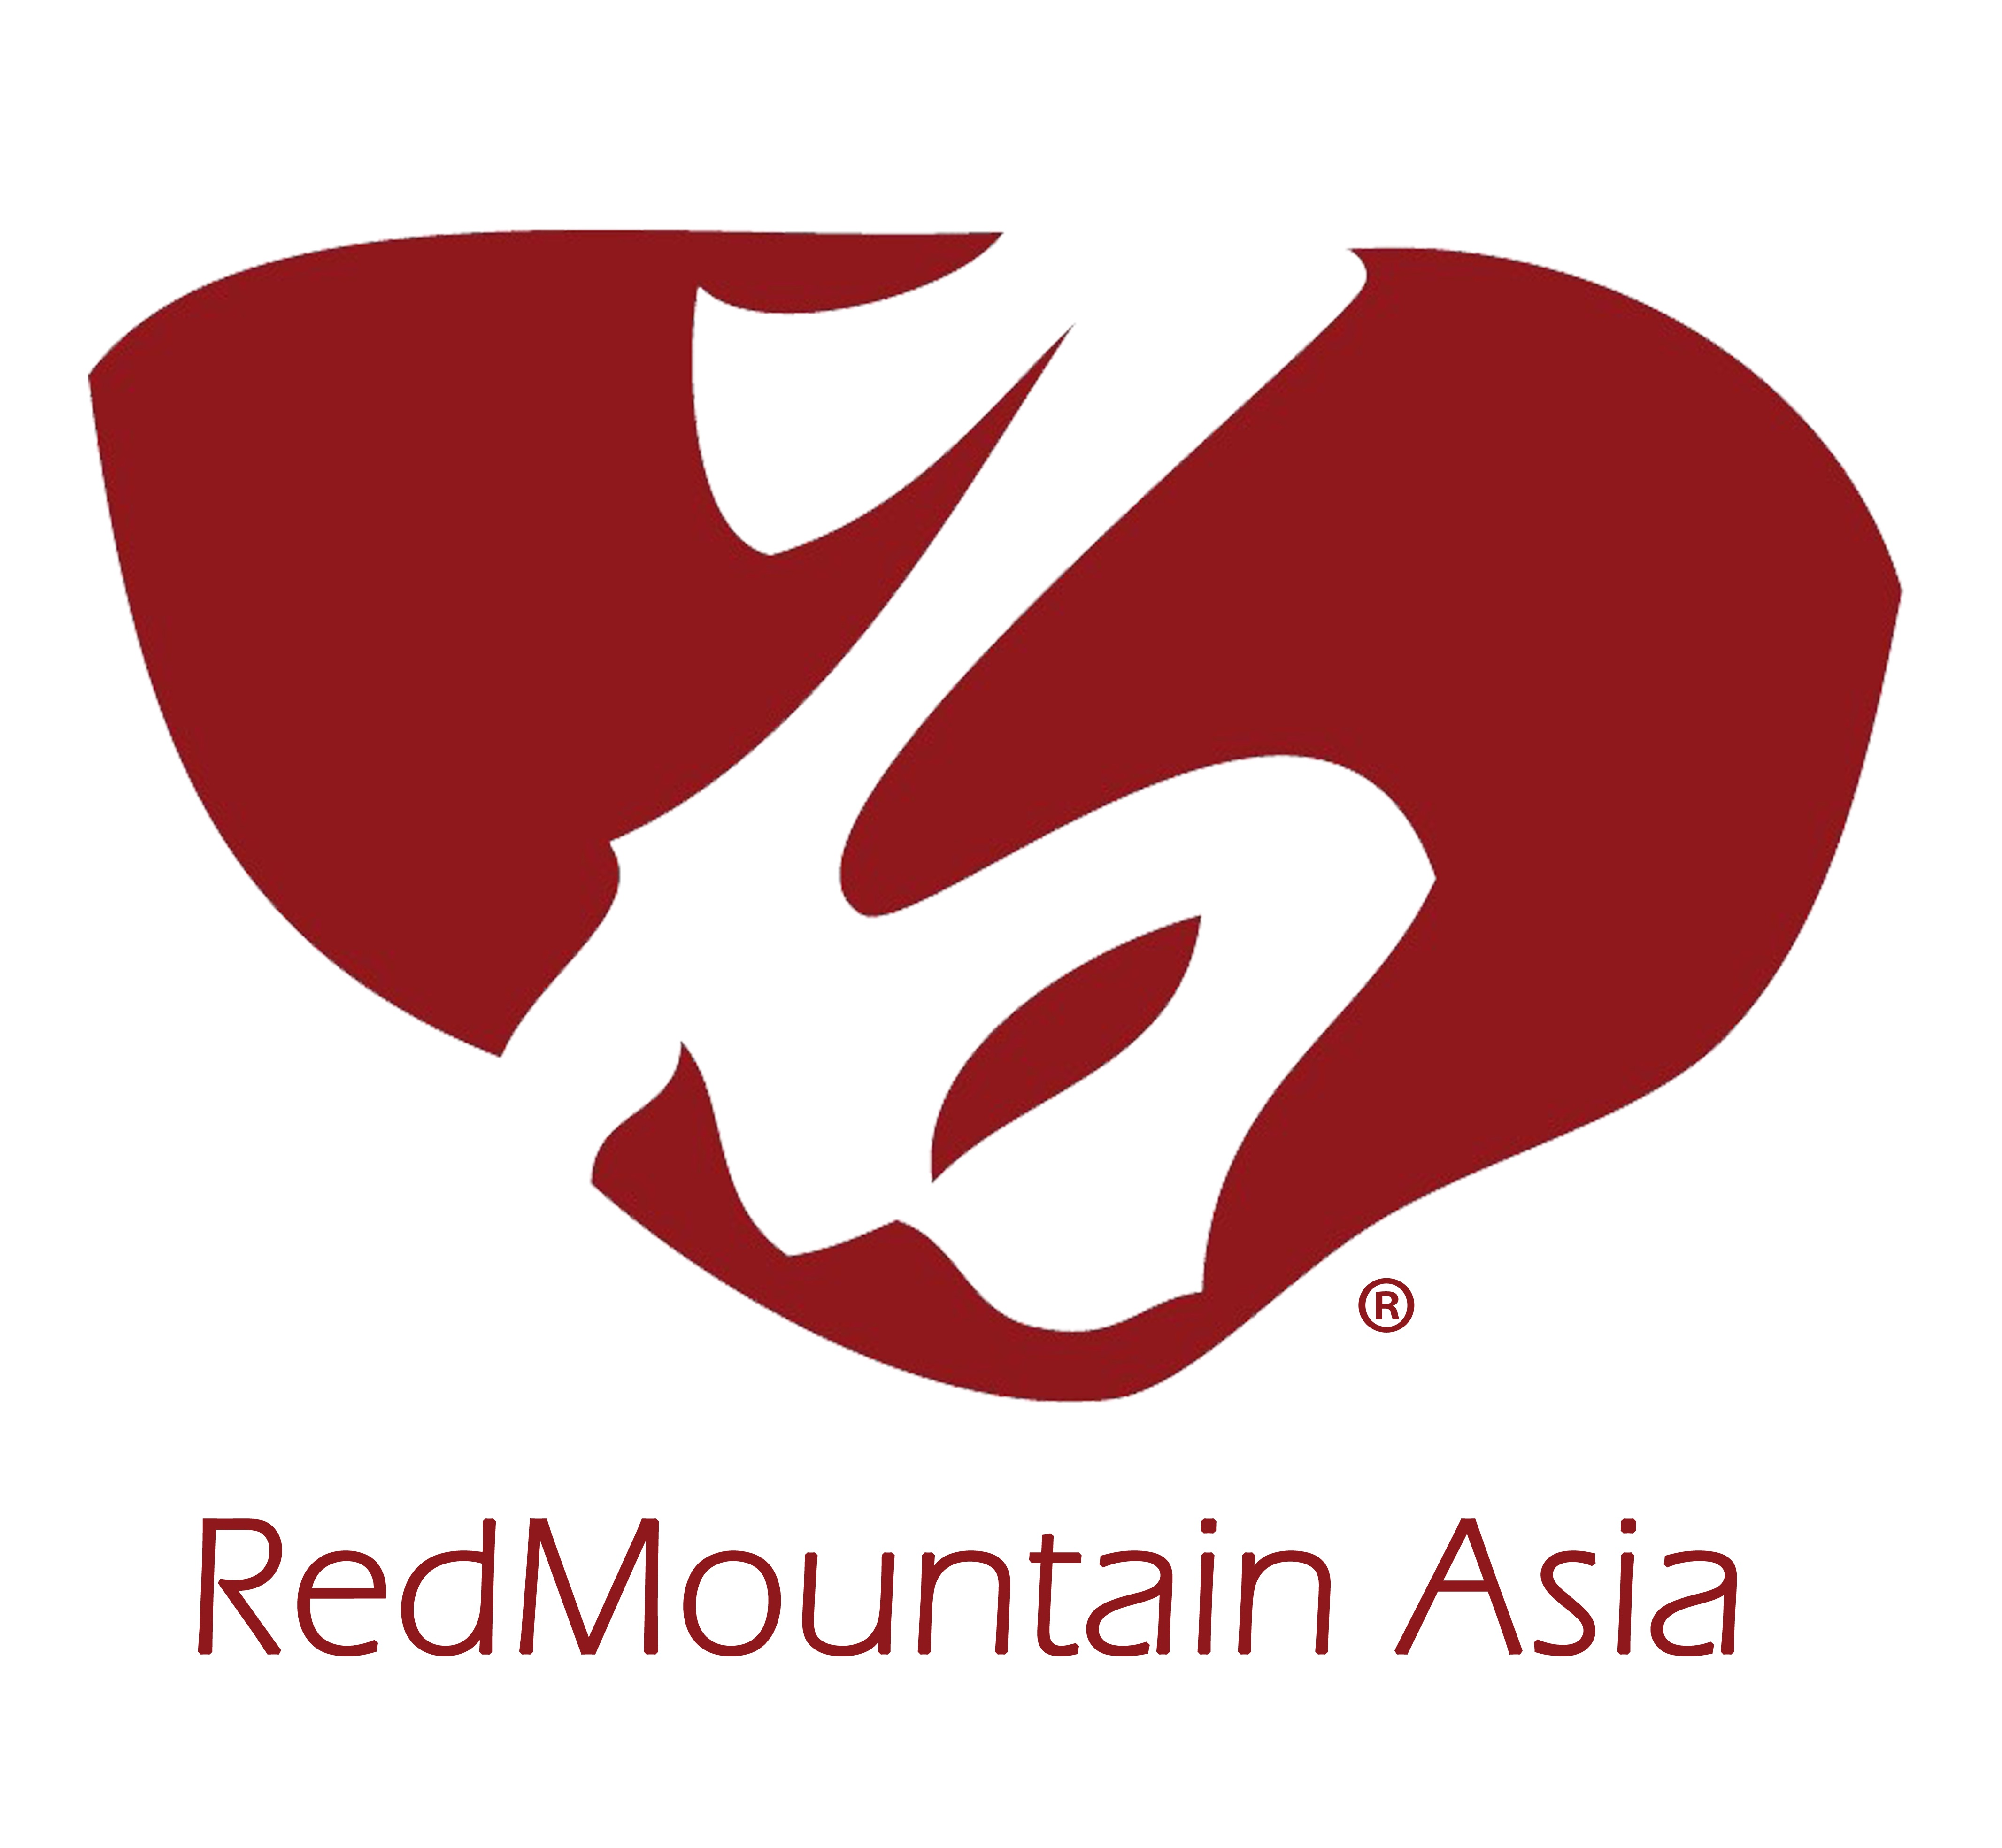 RedMountain Asia LimitedSales Administrator, F&B   日常業務アシスタント, Food & Beverage (Japanese client)